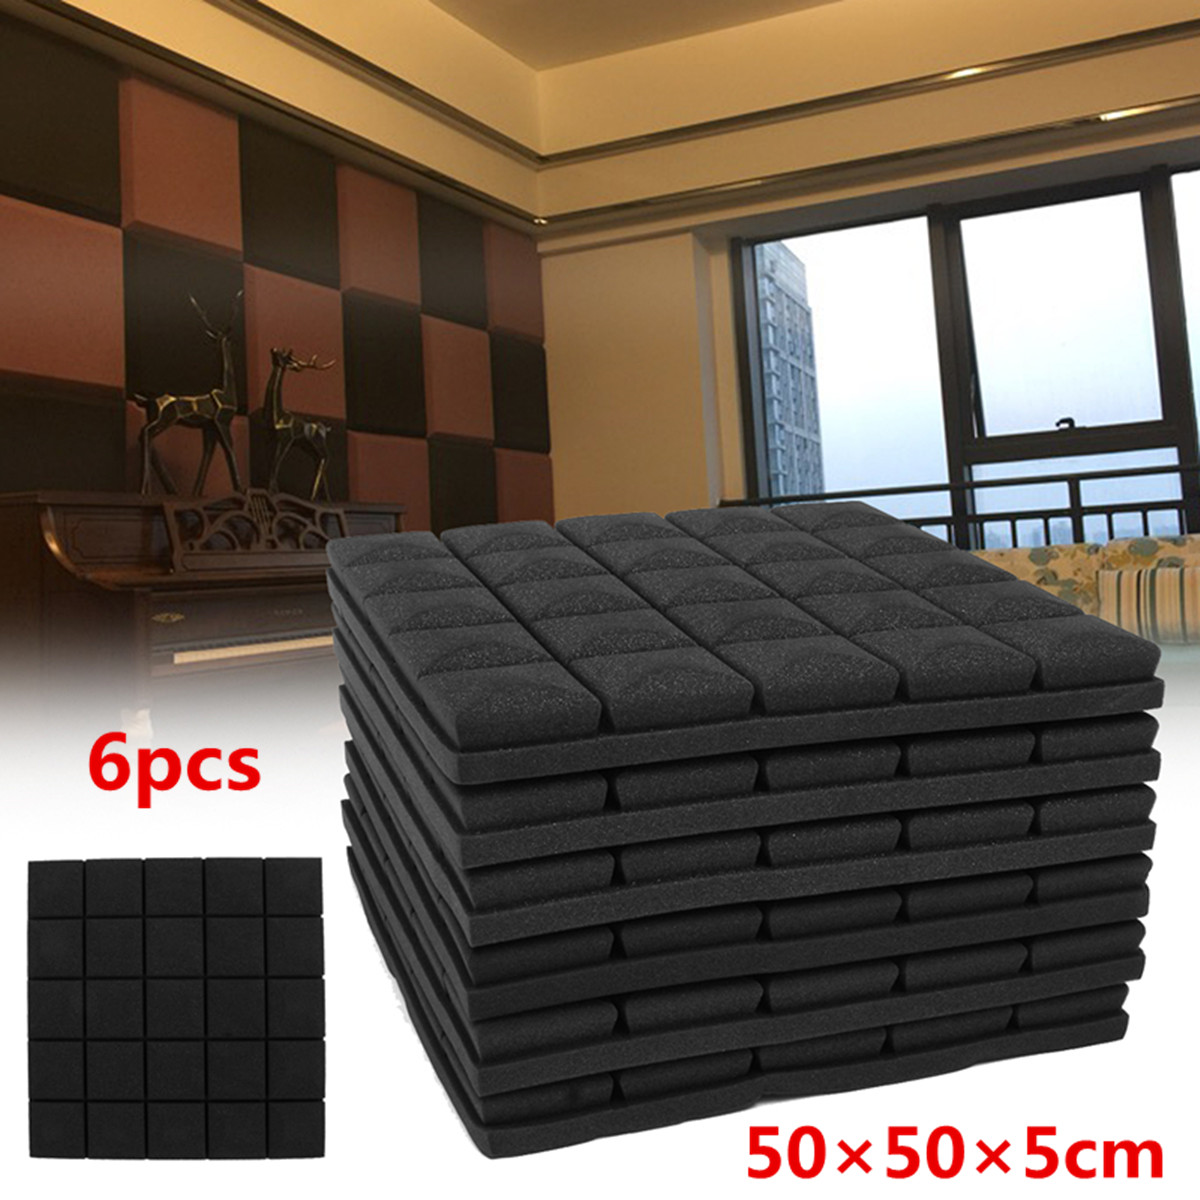 6Pcs 50x50x5cm Soundproof Acoustic Foam Wedge Studio Sound Absorption Wall Panel Polyurethane sound absorption coefficient analysis